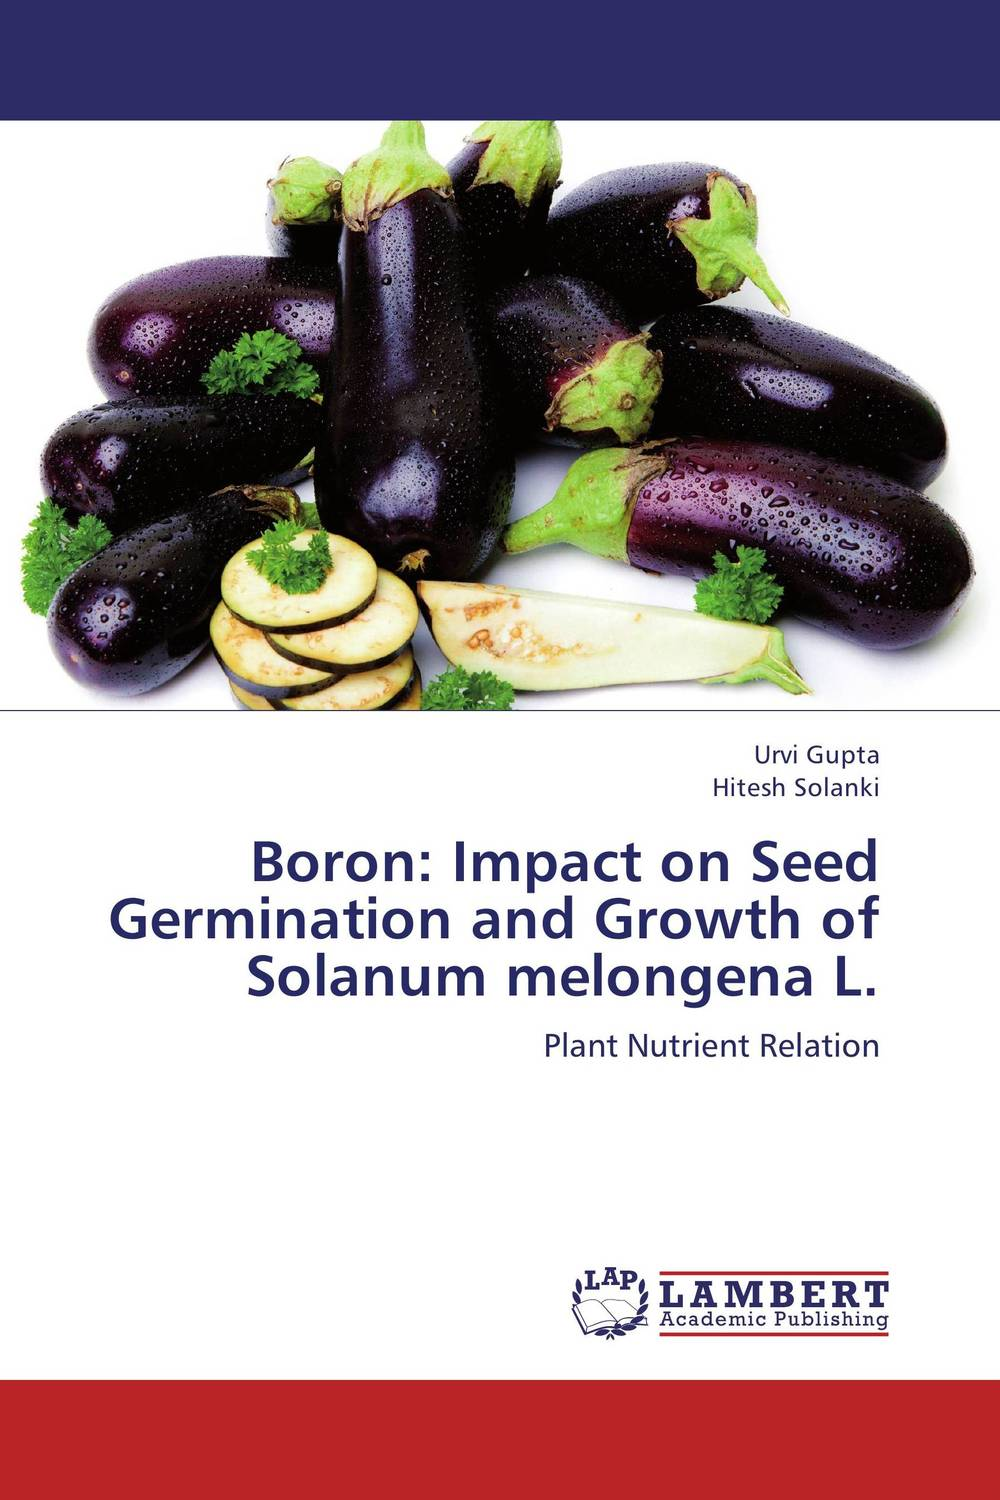 Boron: Impact on Seed Germination and Growth of Solanum melongena L. seed dormancy and germination